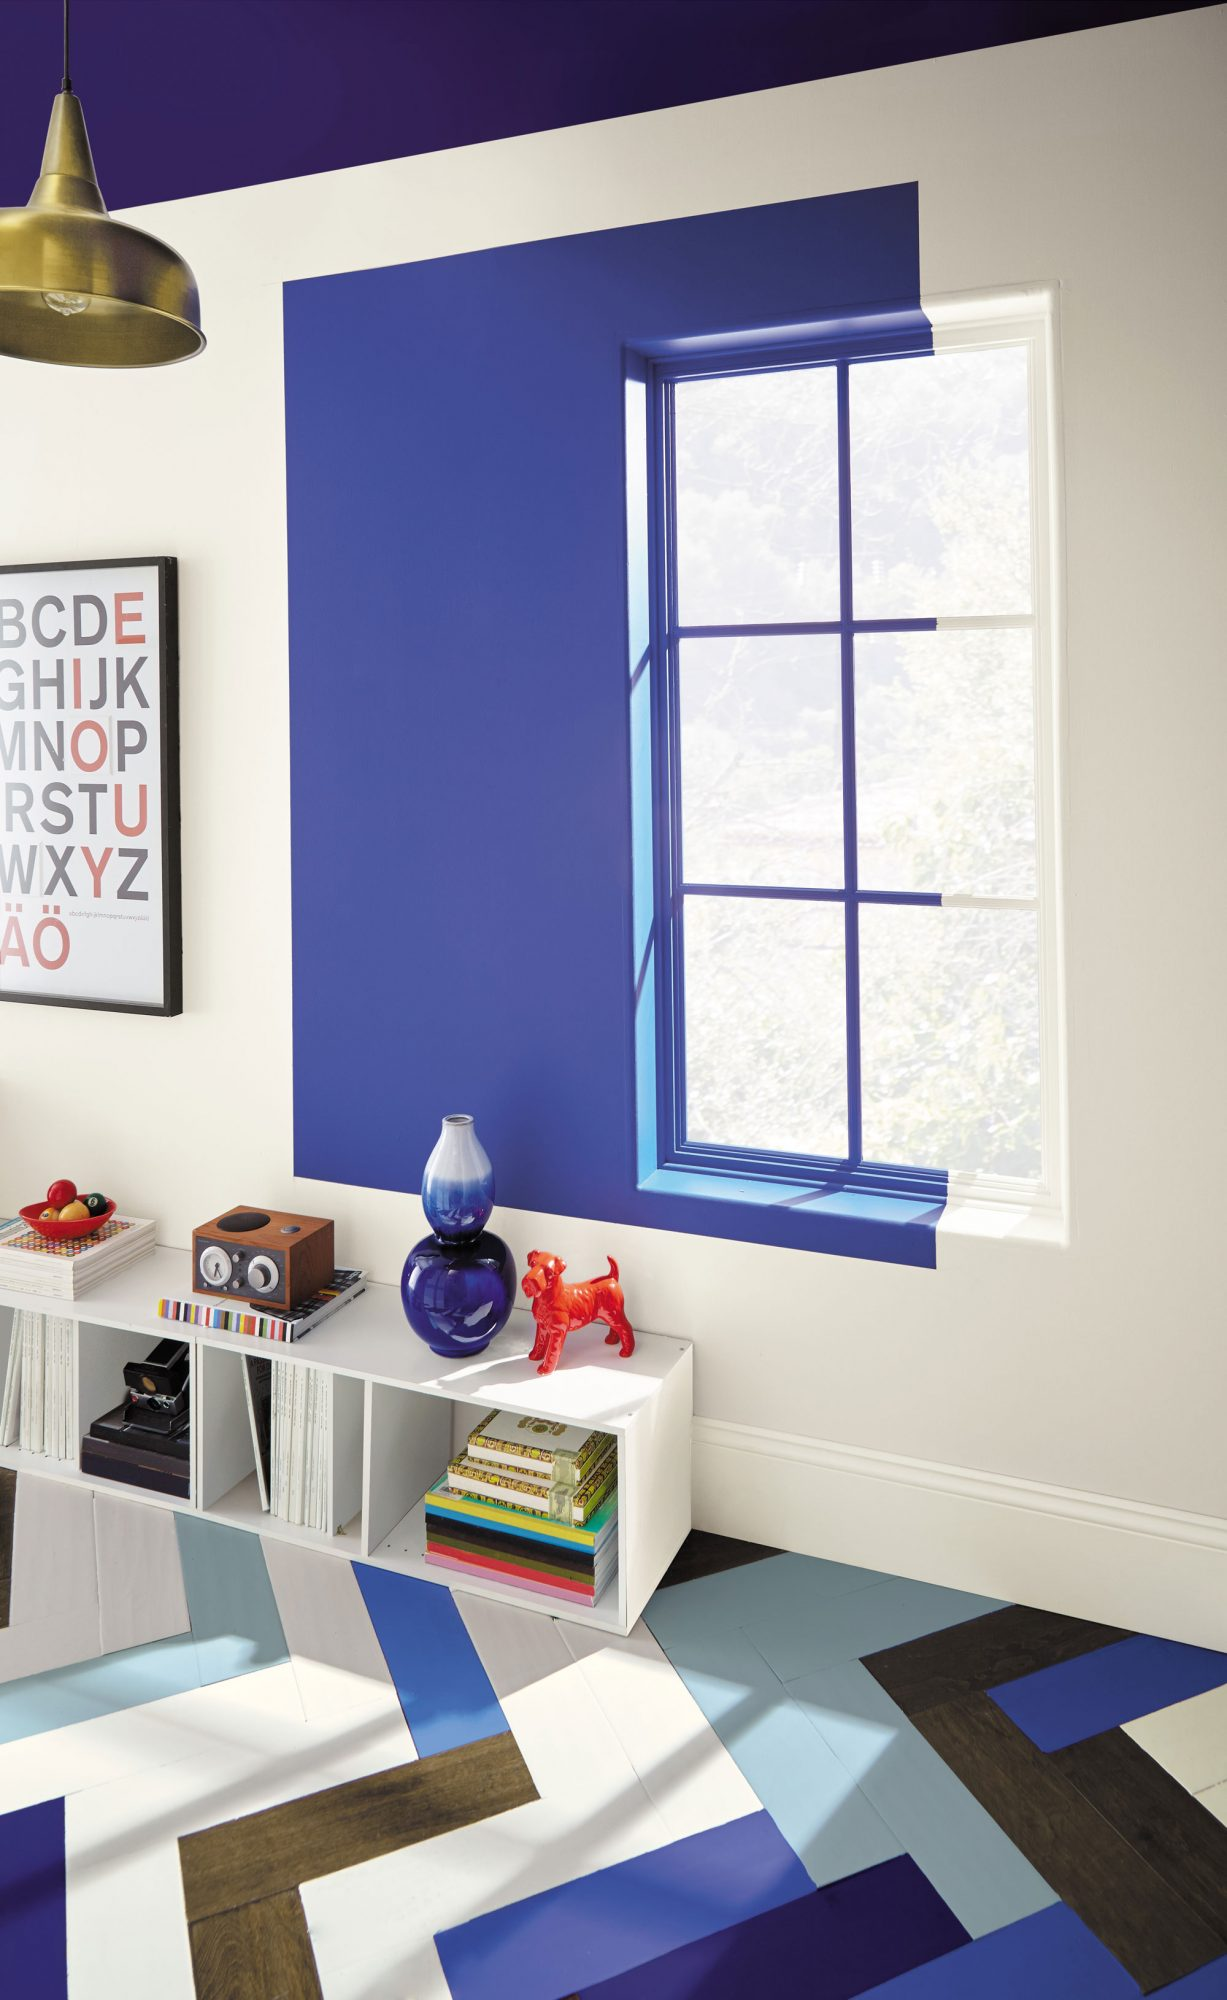 Door / Ceiling: Constellation Blue T18-18Window Wall Accent: Soul Search T18-14Floor: Soul Search T18-14, Constellation Blue T18-18, Casual Day T18-13, Soft Focus T18-09